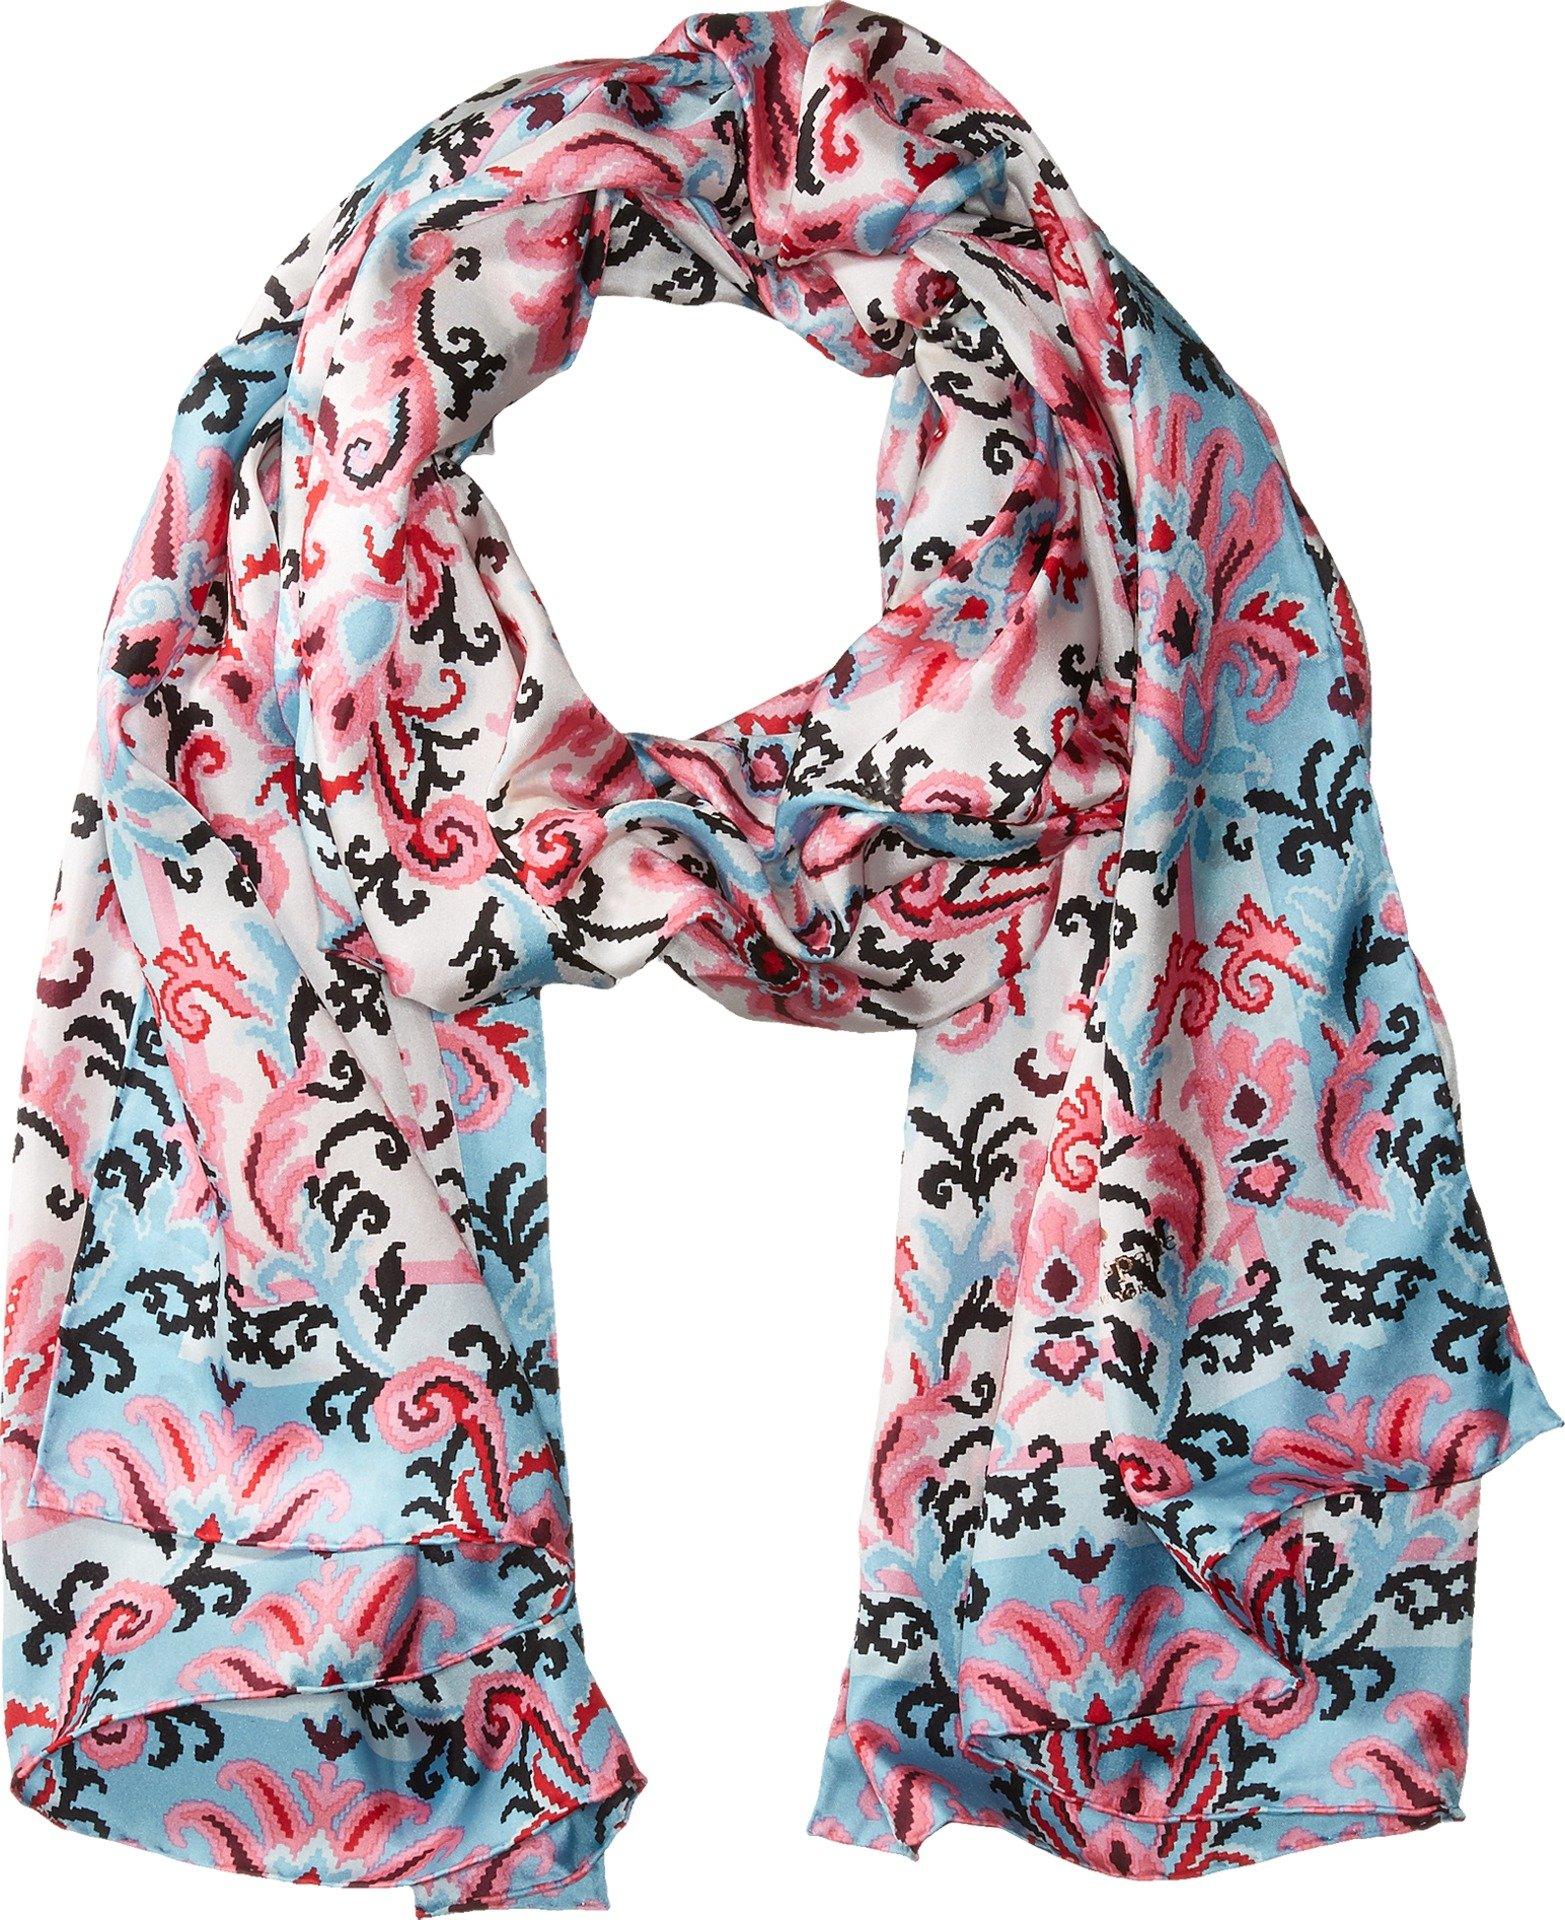 Kate Spade New York Women's Tapestry Silk Oblong Scarf Parisian Pink One Size by Kate Spade New York